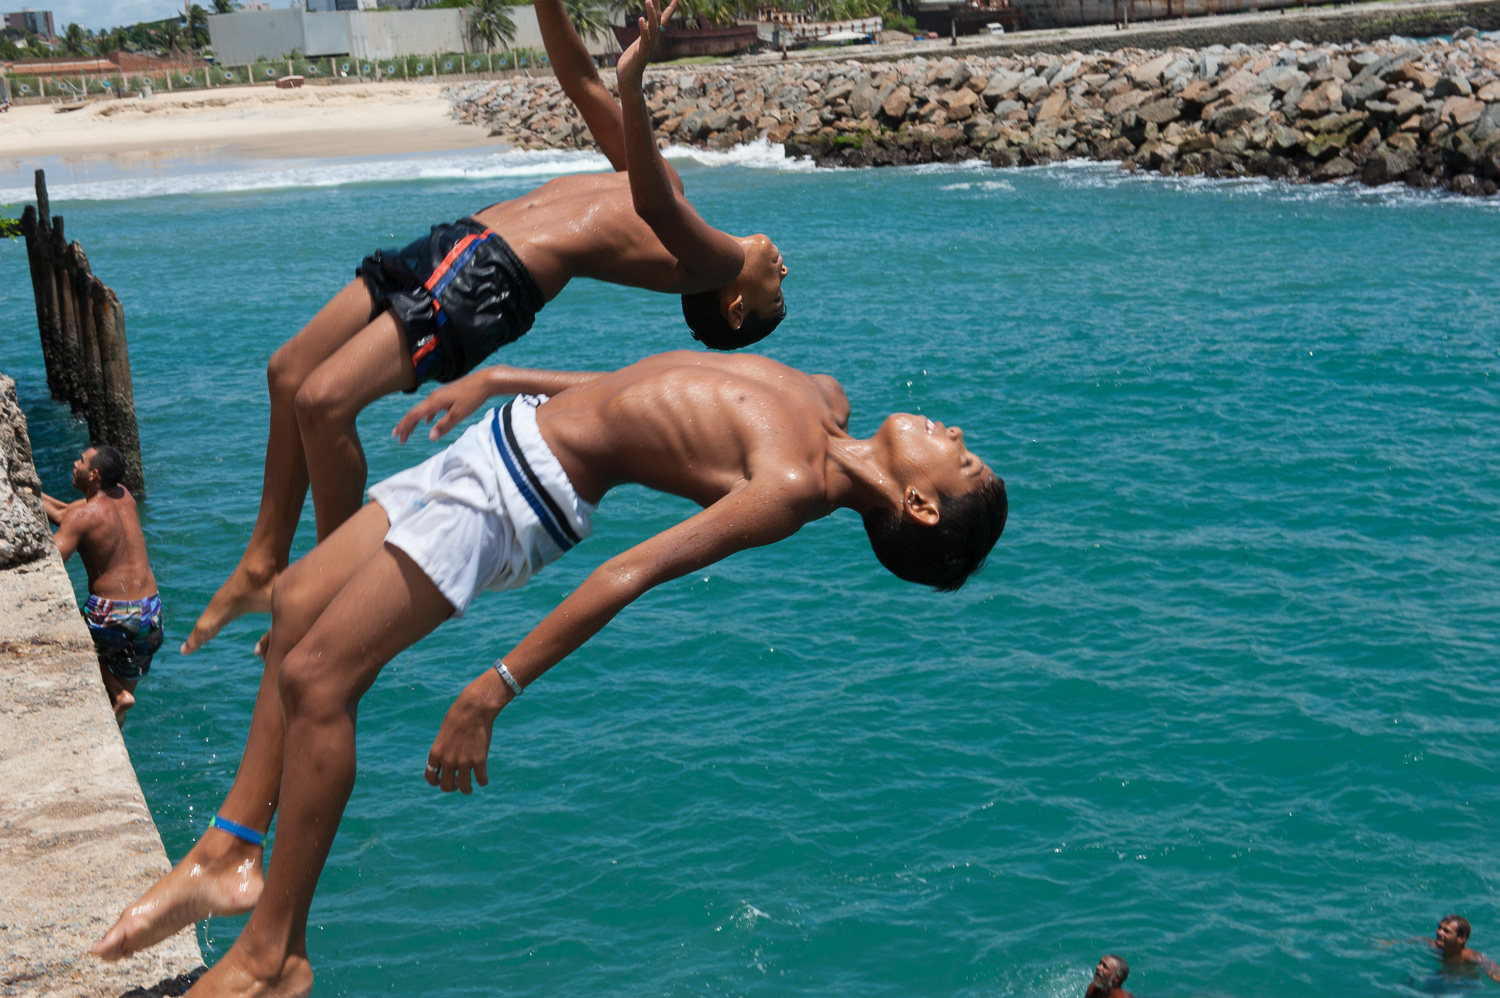 Boys and men compete to see who can do the best dive off of the seaside pier in Fortaleza.